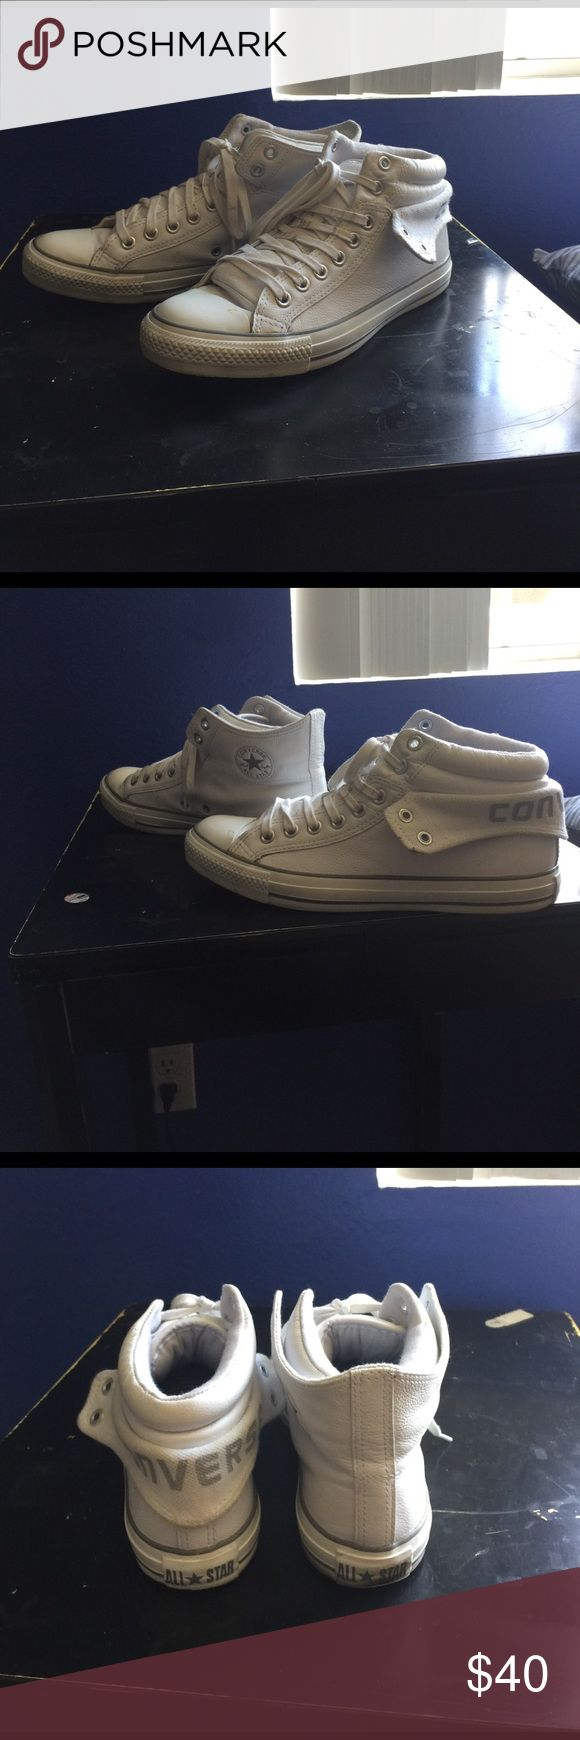 Unisex White Leather CONVERSE  High Top Fold Down Unisex White Leather CONVERSE High Top Fold Down Sneakers. I got these in Adelaide, Australia. Wore hem a handful of times. They are in great shape. Need to be run through the washer to get rid of the stains on the left toe (pictured) and shoe laces. Size 8 men/10 women Converse Shoes Sneakers